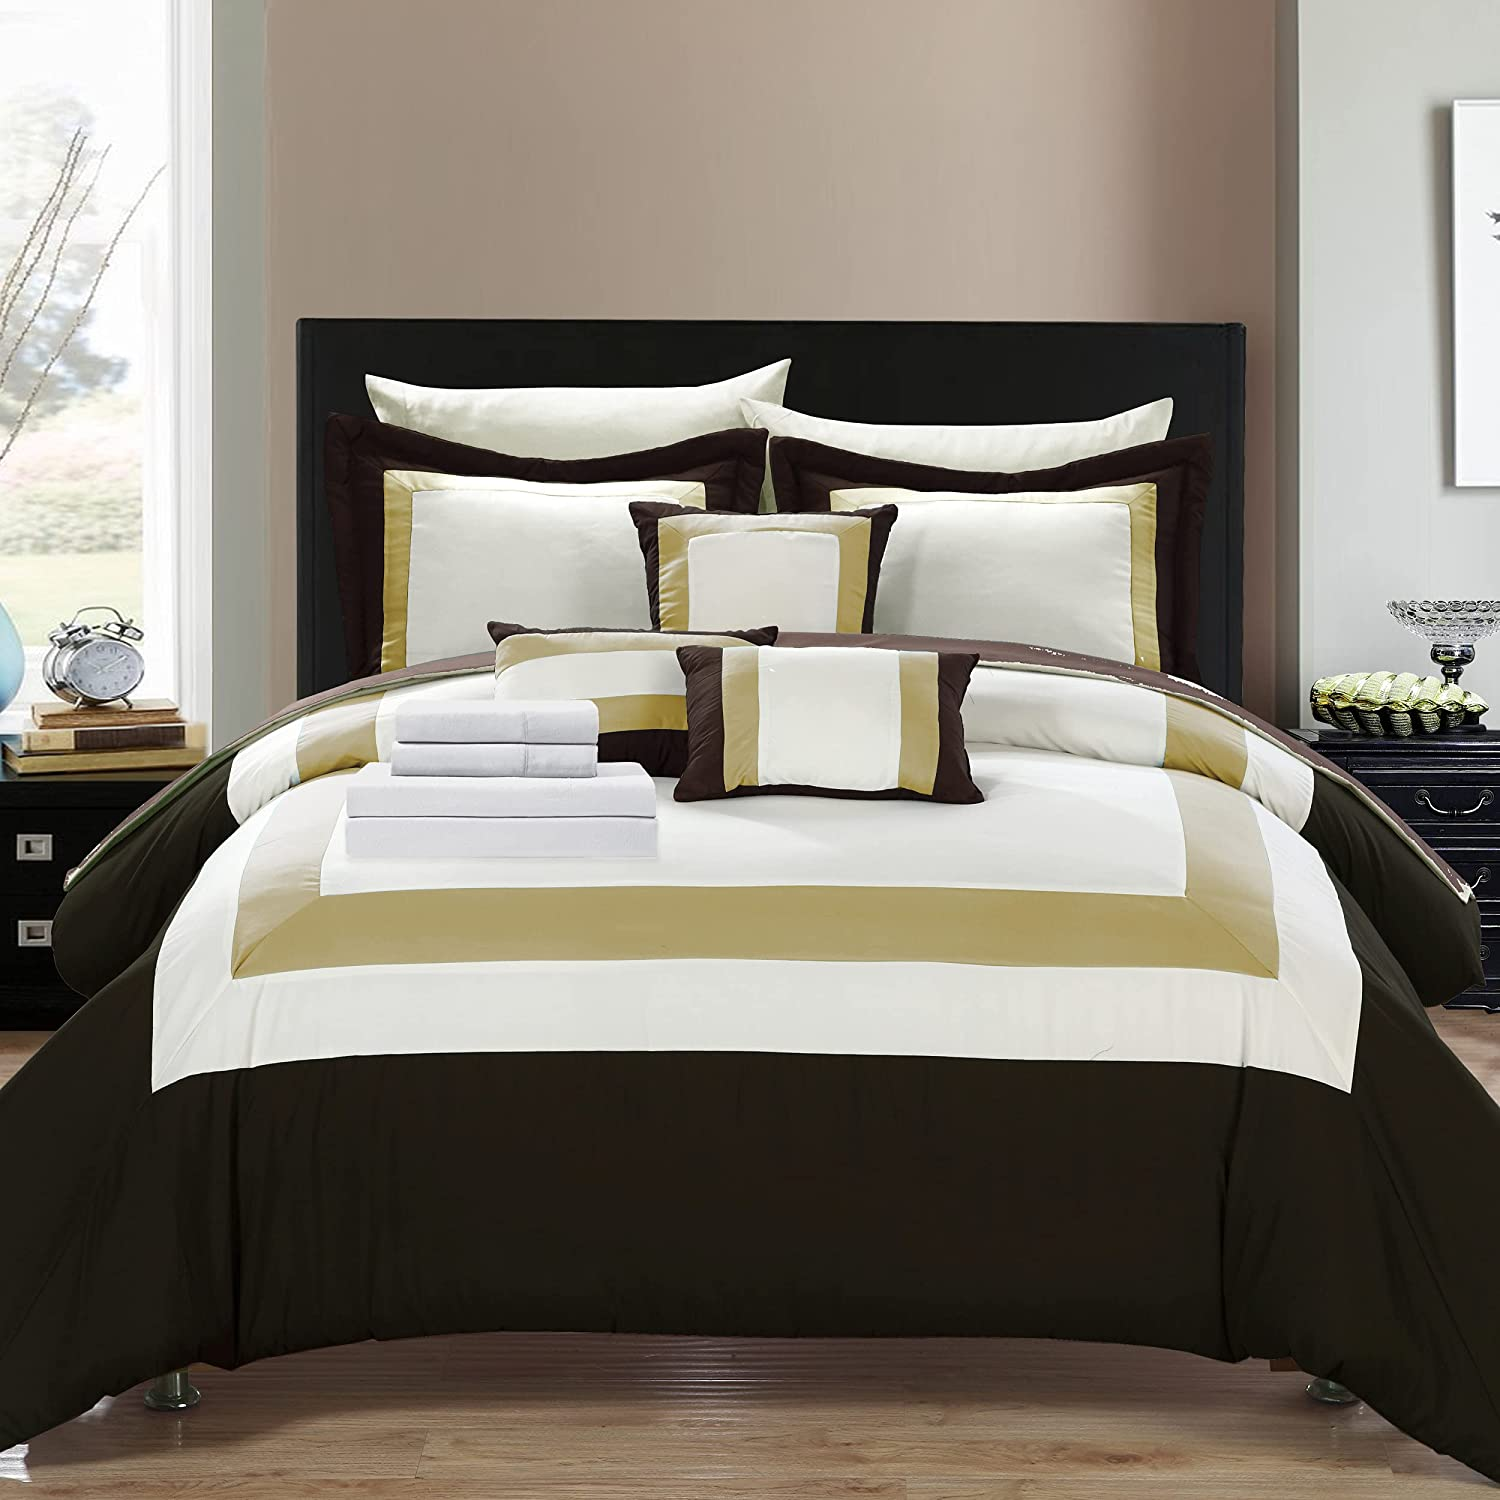 Chic Home Inexpensive Duke 10 Comforter New Free Shipping Complete Color Block Pieced Patt Bag